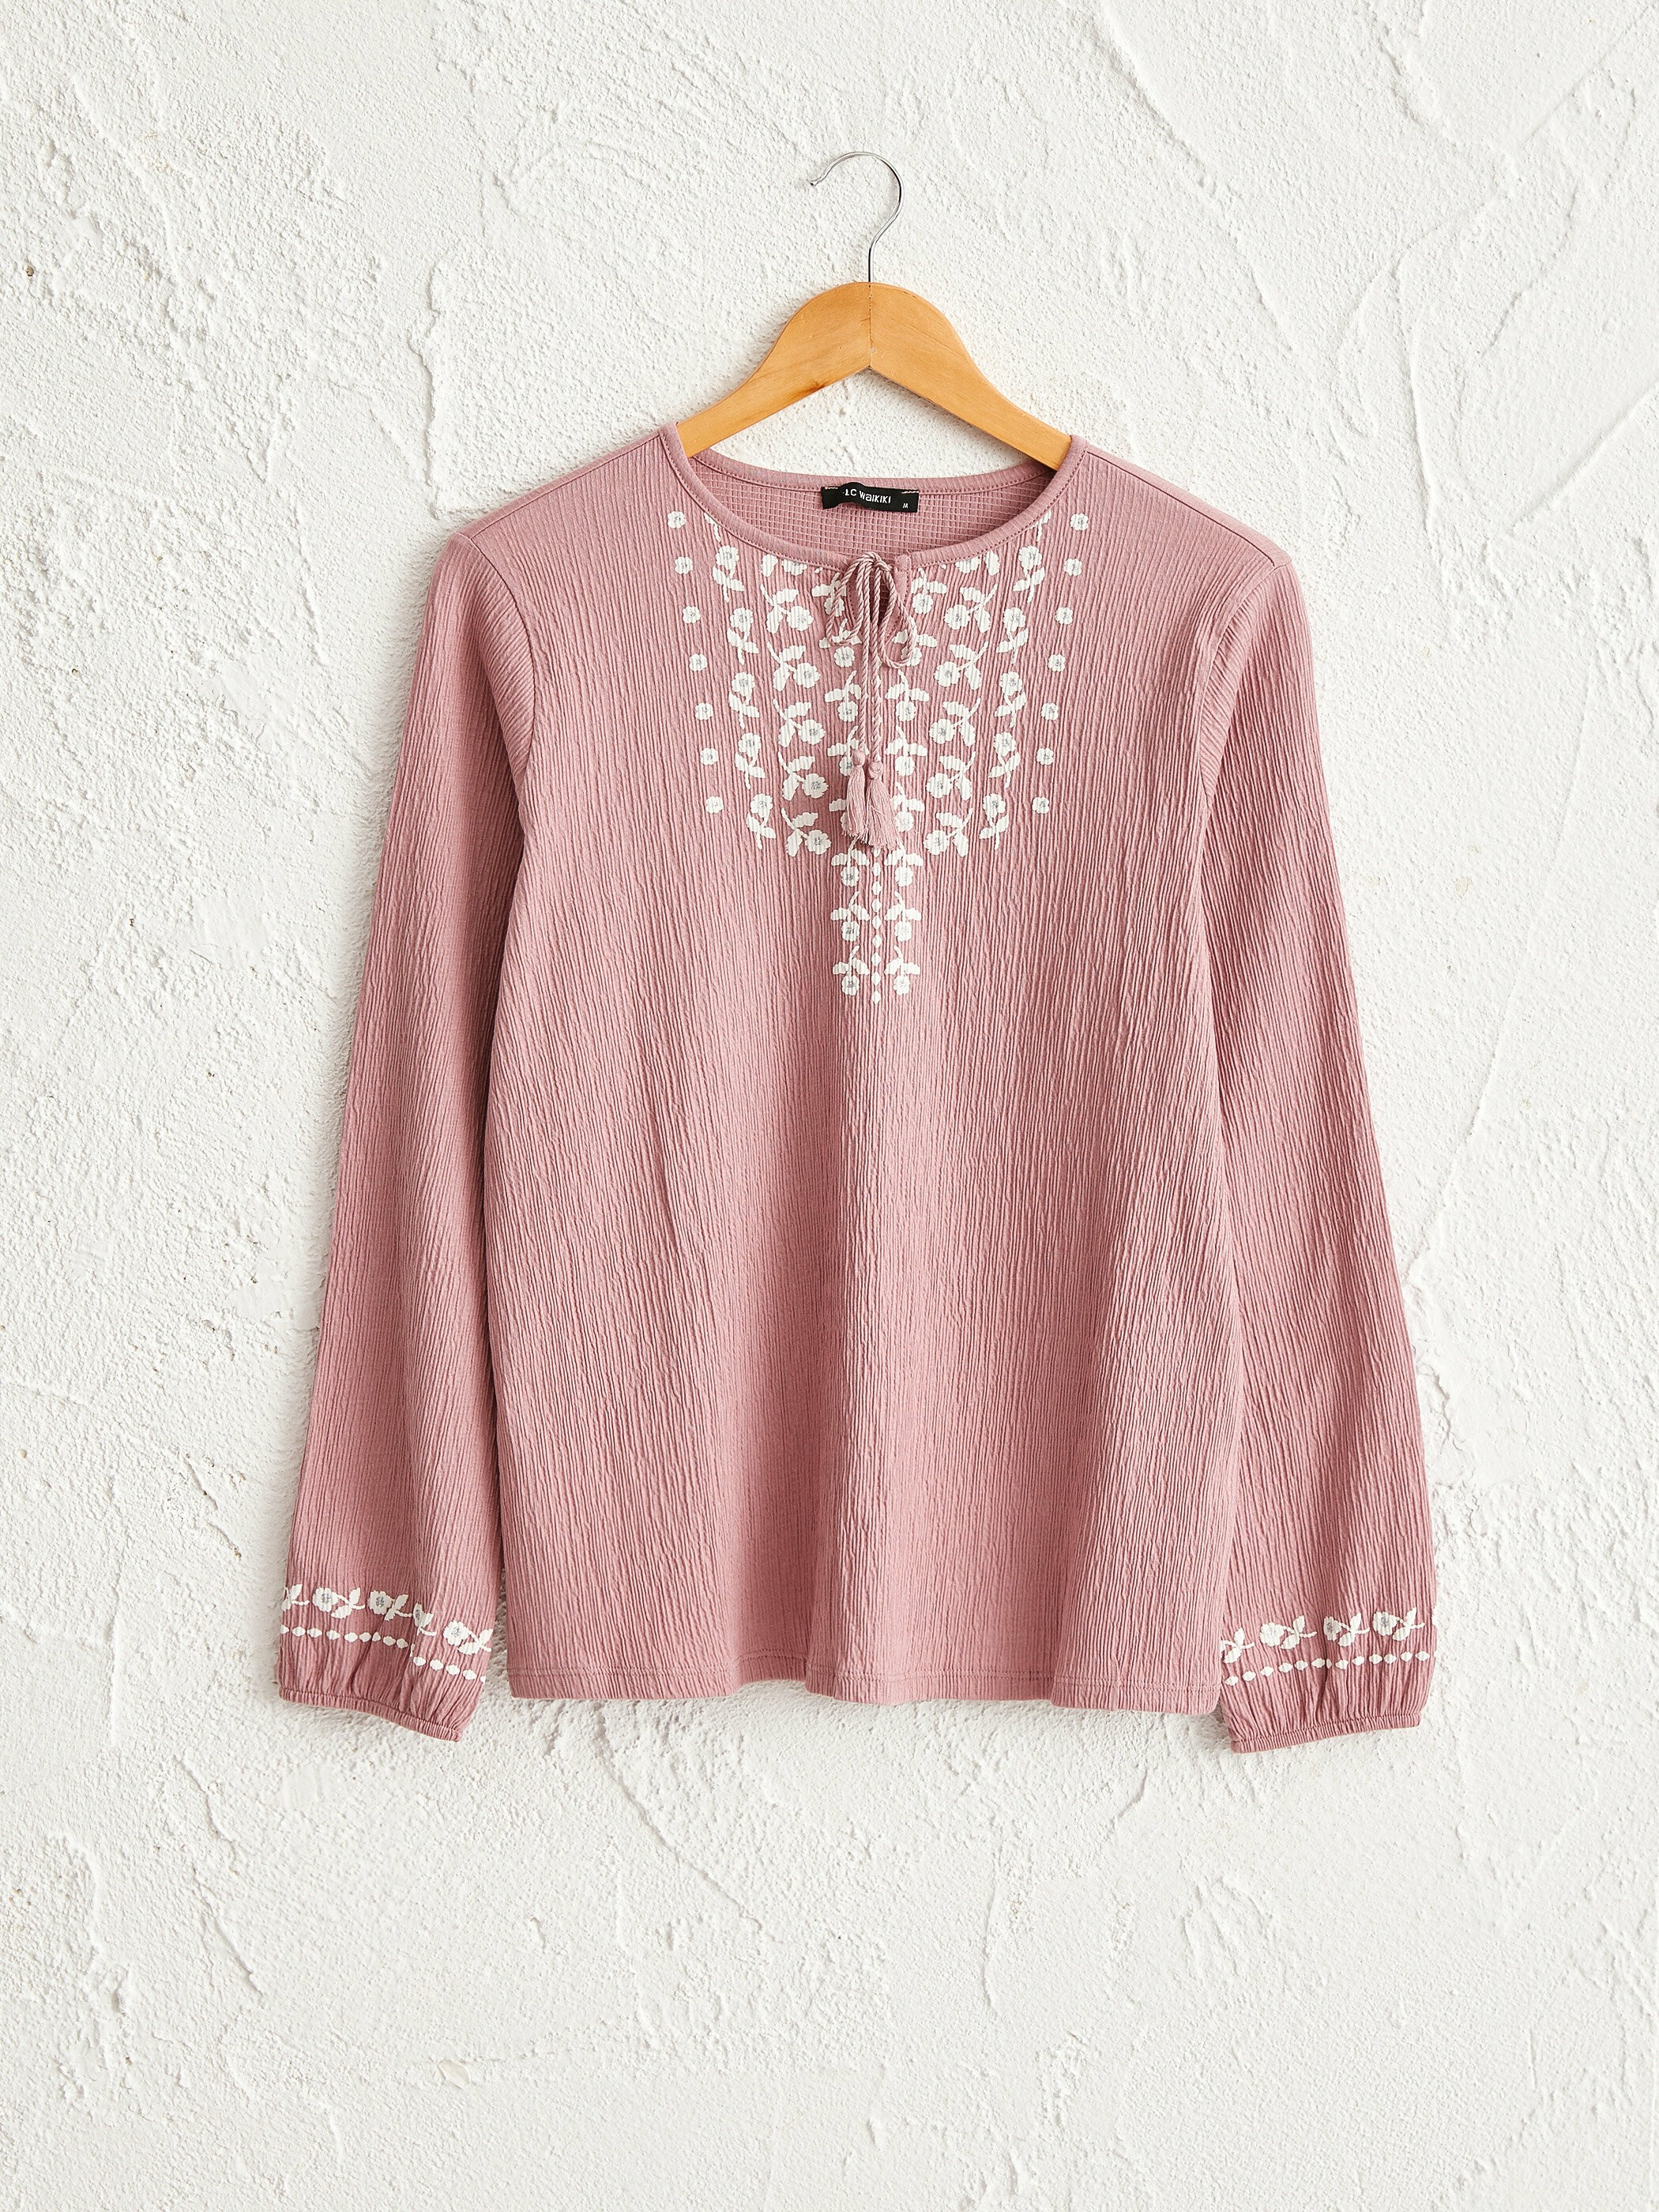 PINK - T-Shirt made of Textured Fabric - 0SAA82Z8